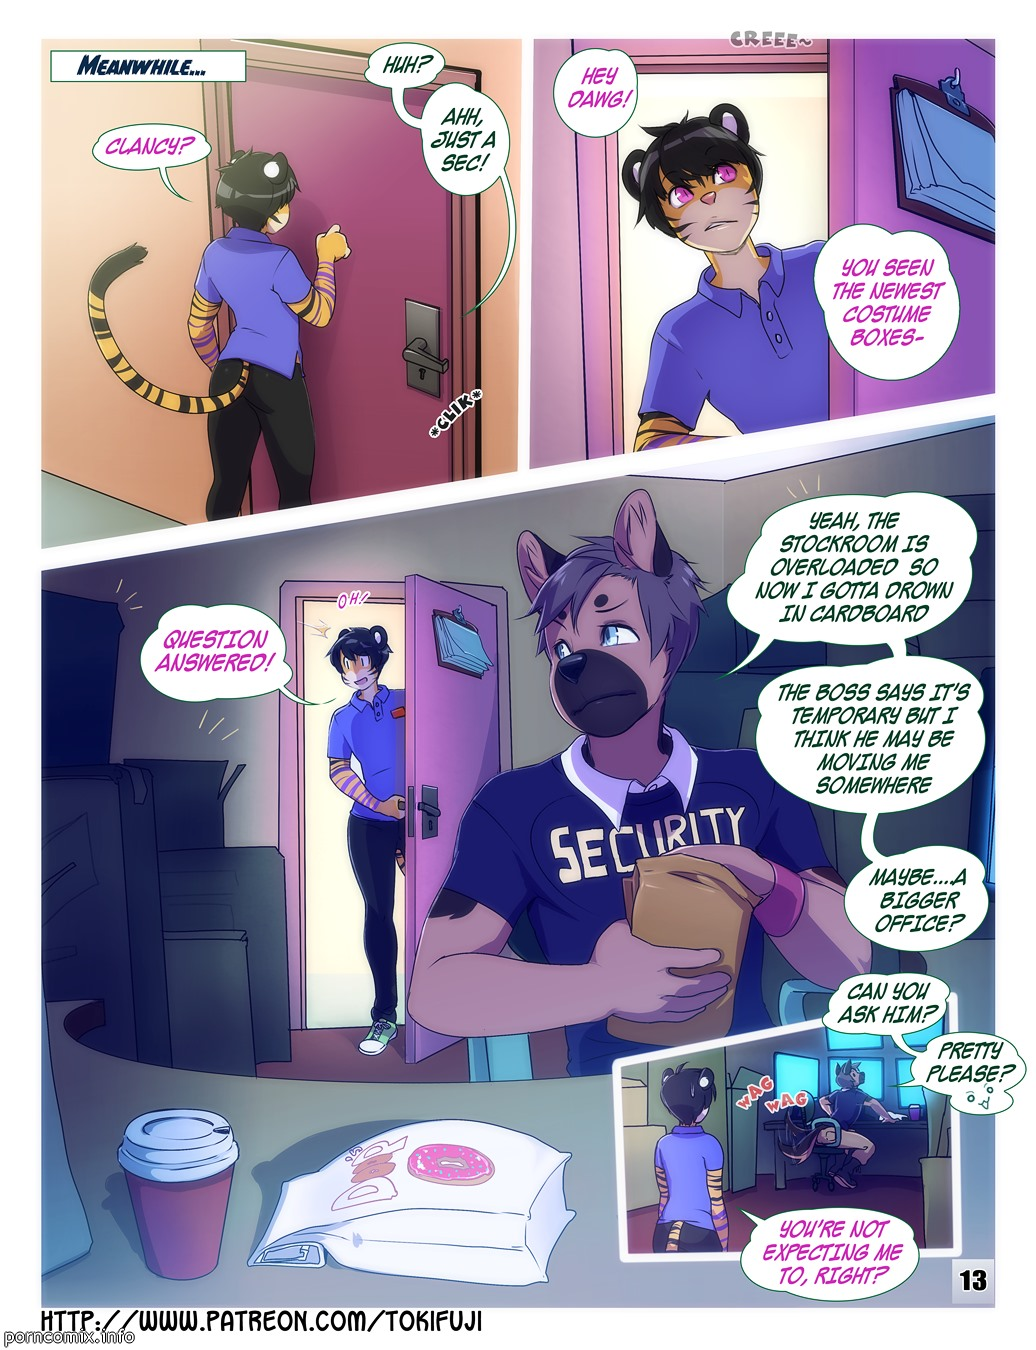 furry comic - Catching Up With Friends